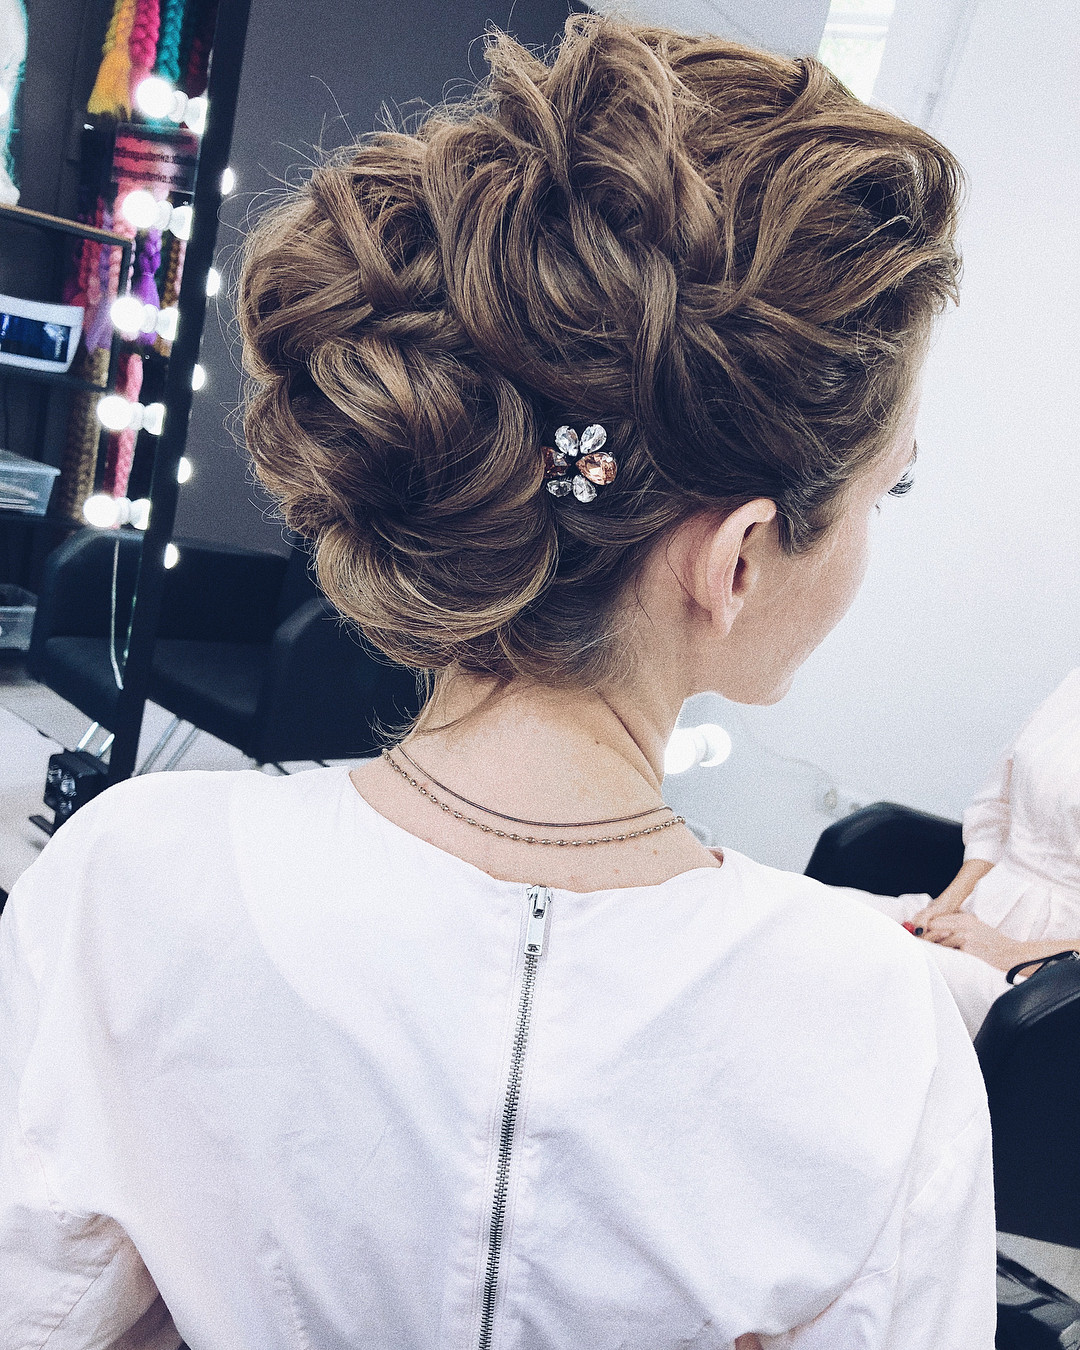 Best ideas about Hairstyle Updo 2019 . Save or Pin 10 Gorgeous Prom Updos for Long Hair Prom Updo Hairstyles Now.